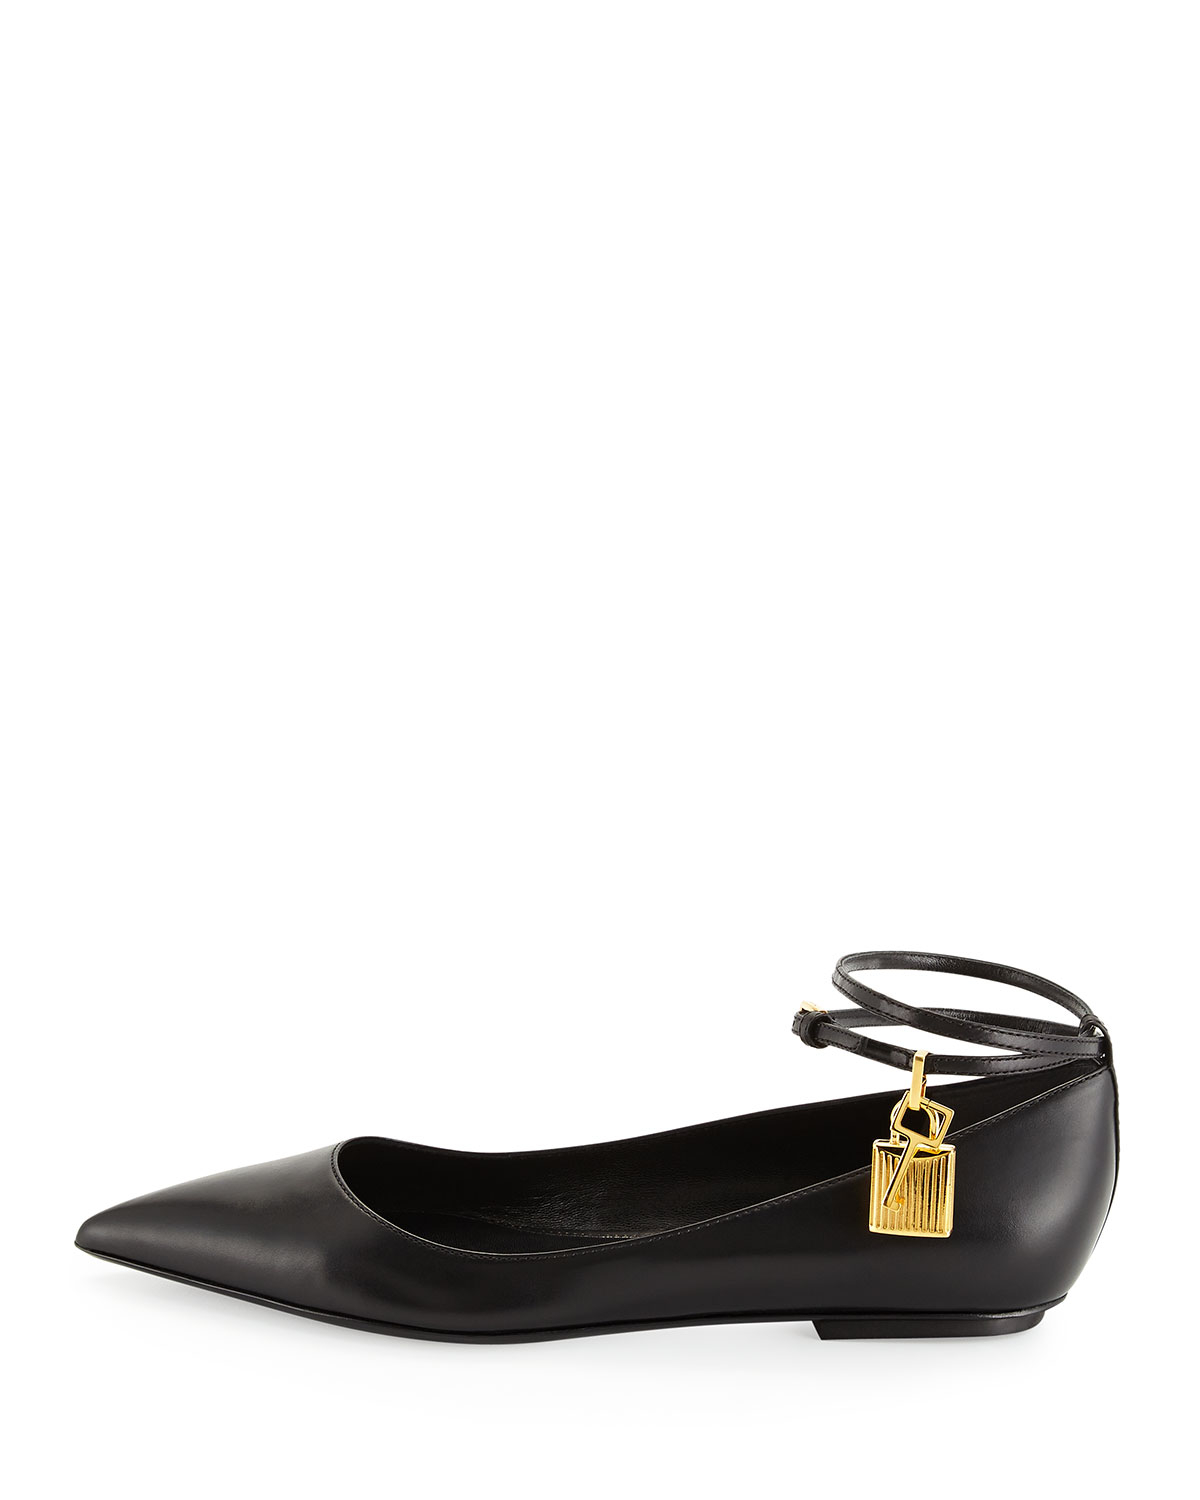 da21852e66e Lyst - Tom Ford Leather Ankle-Lock Ballerina Flat in Black